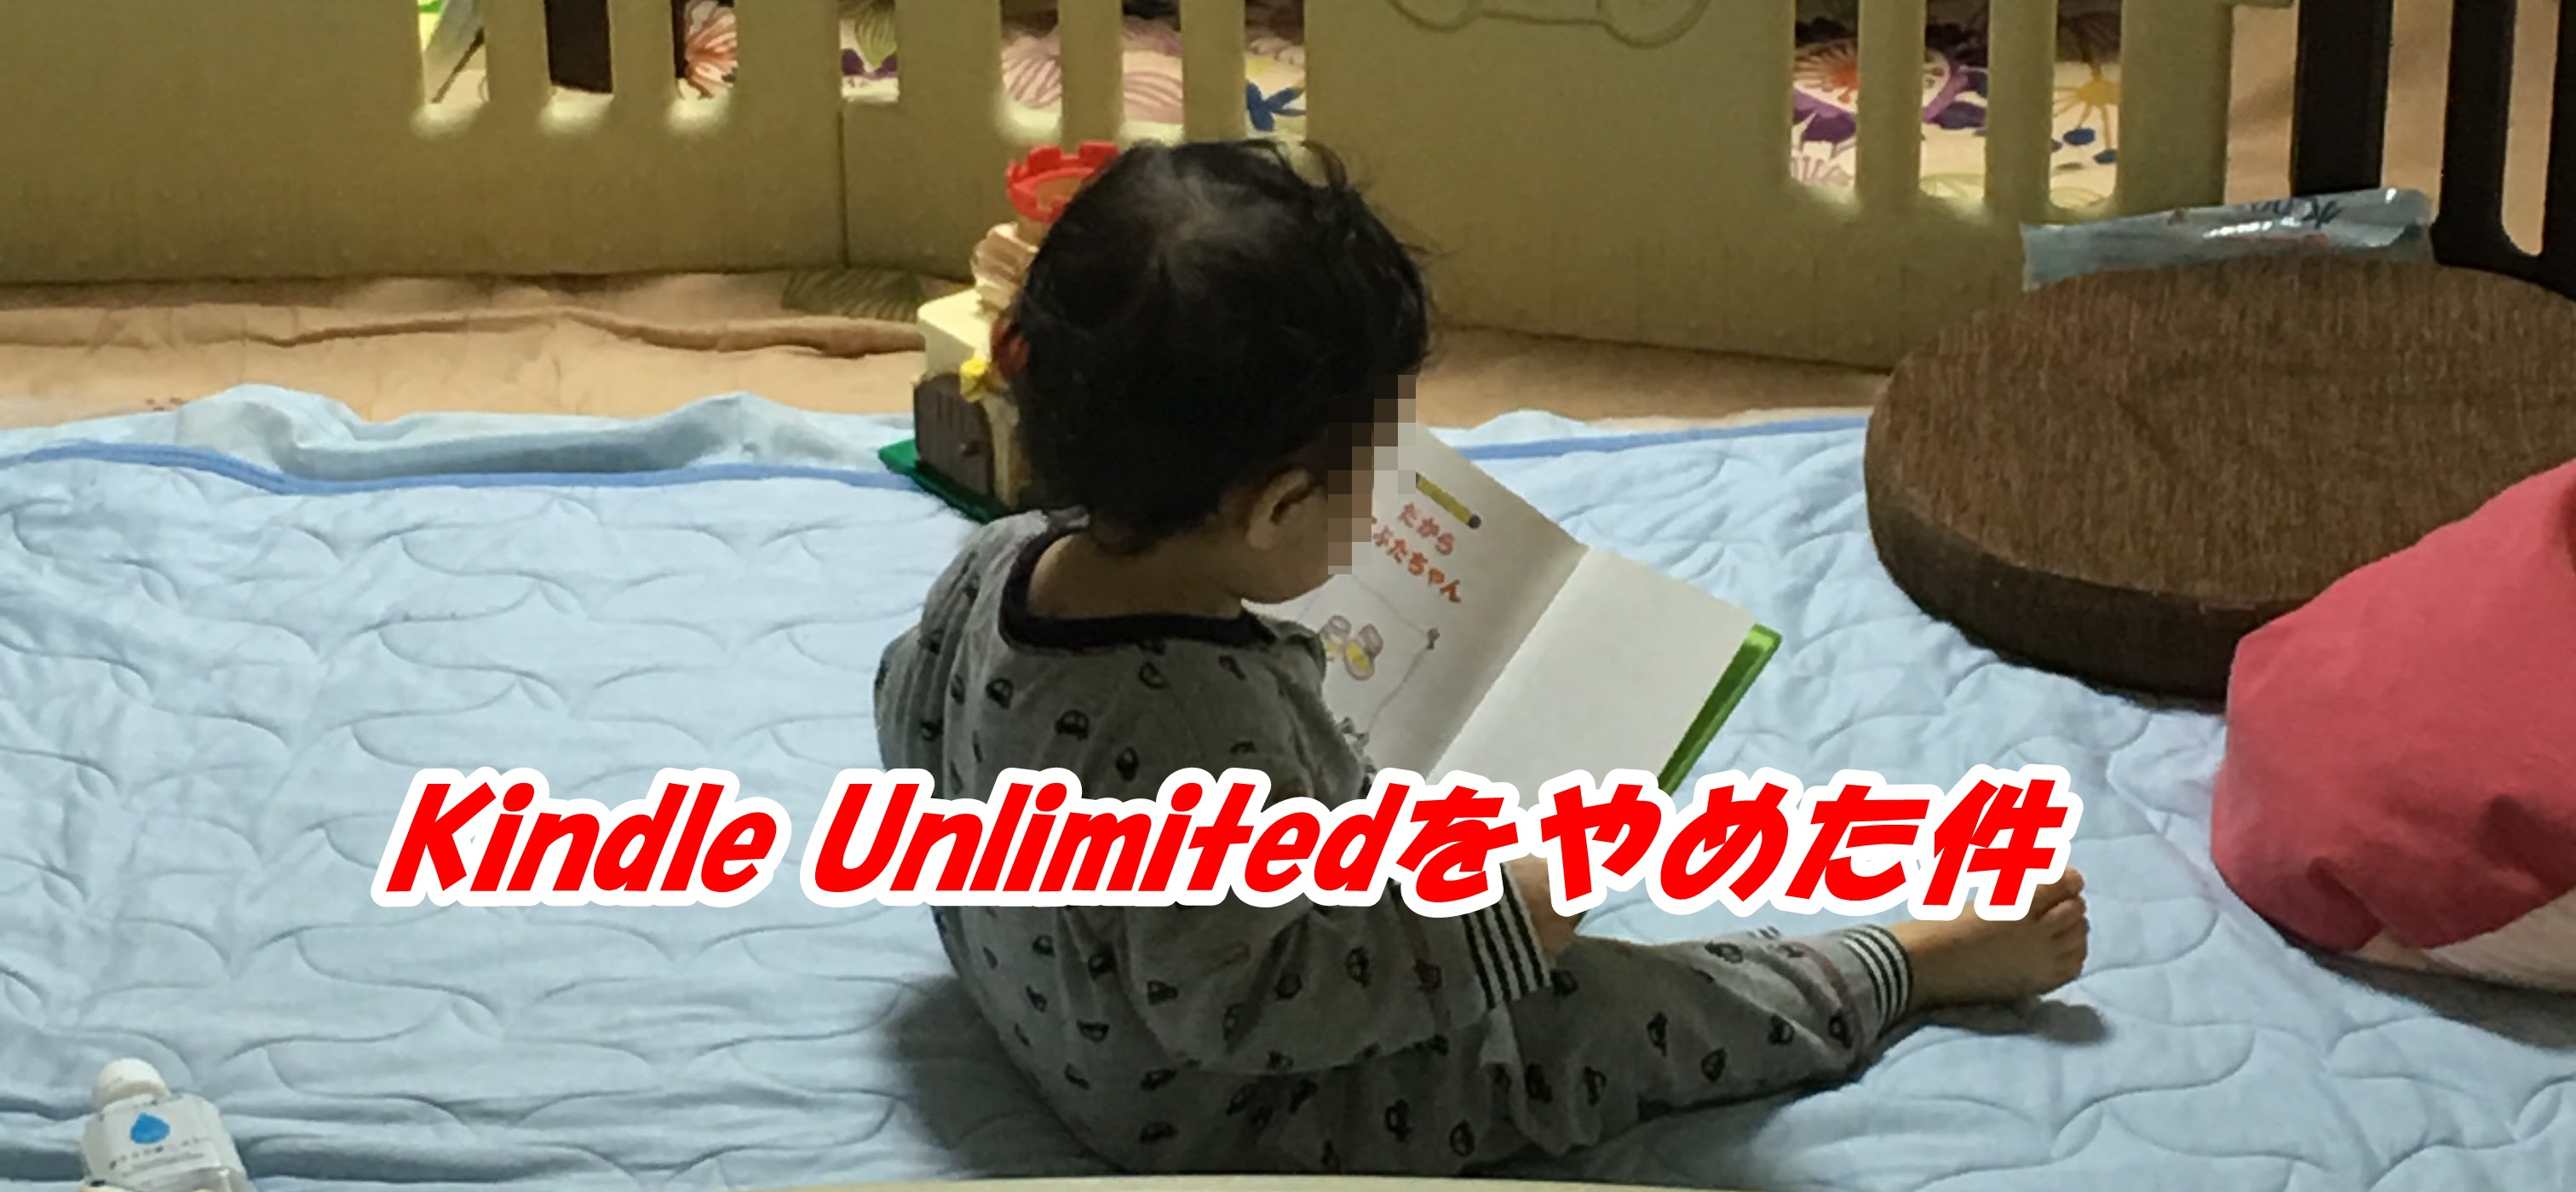 kindle Unlimited を解約した理由